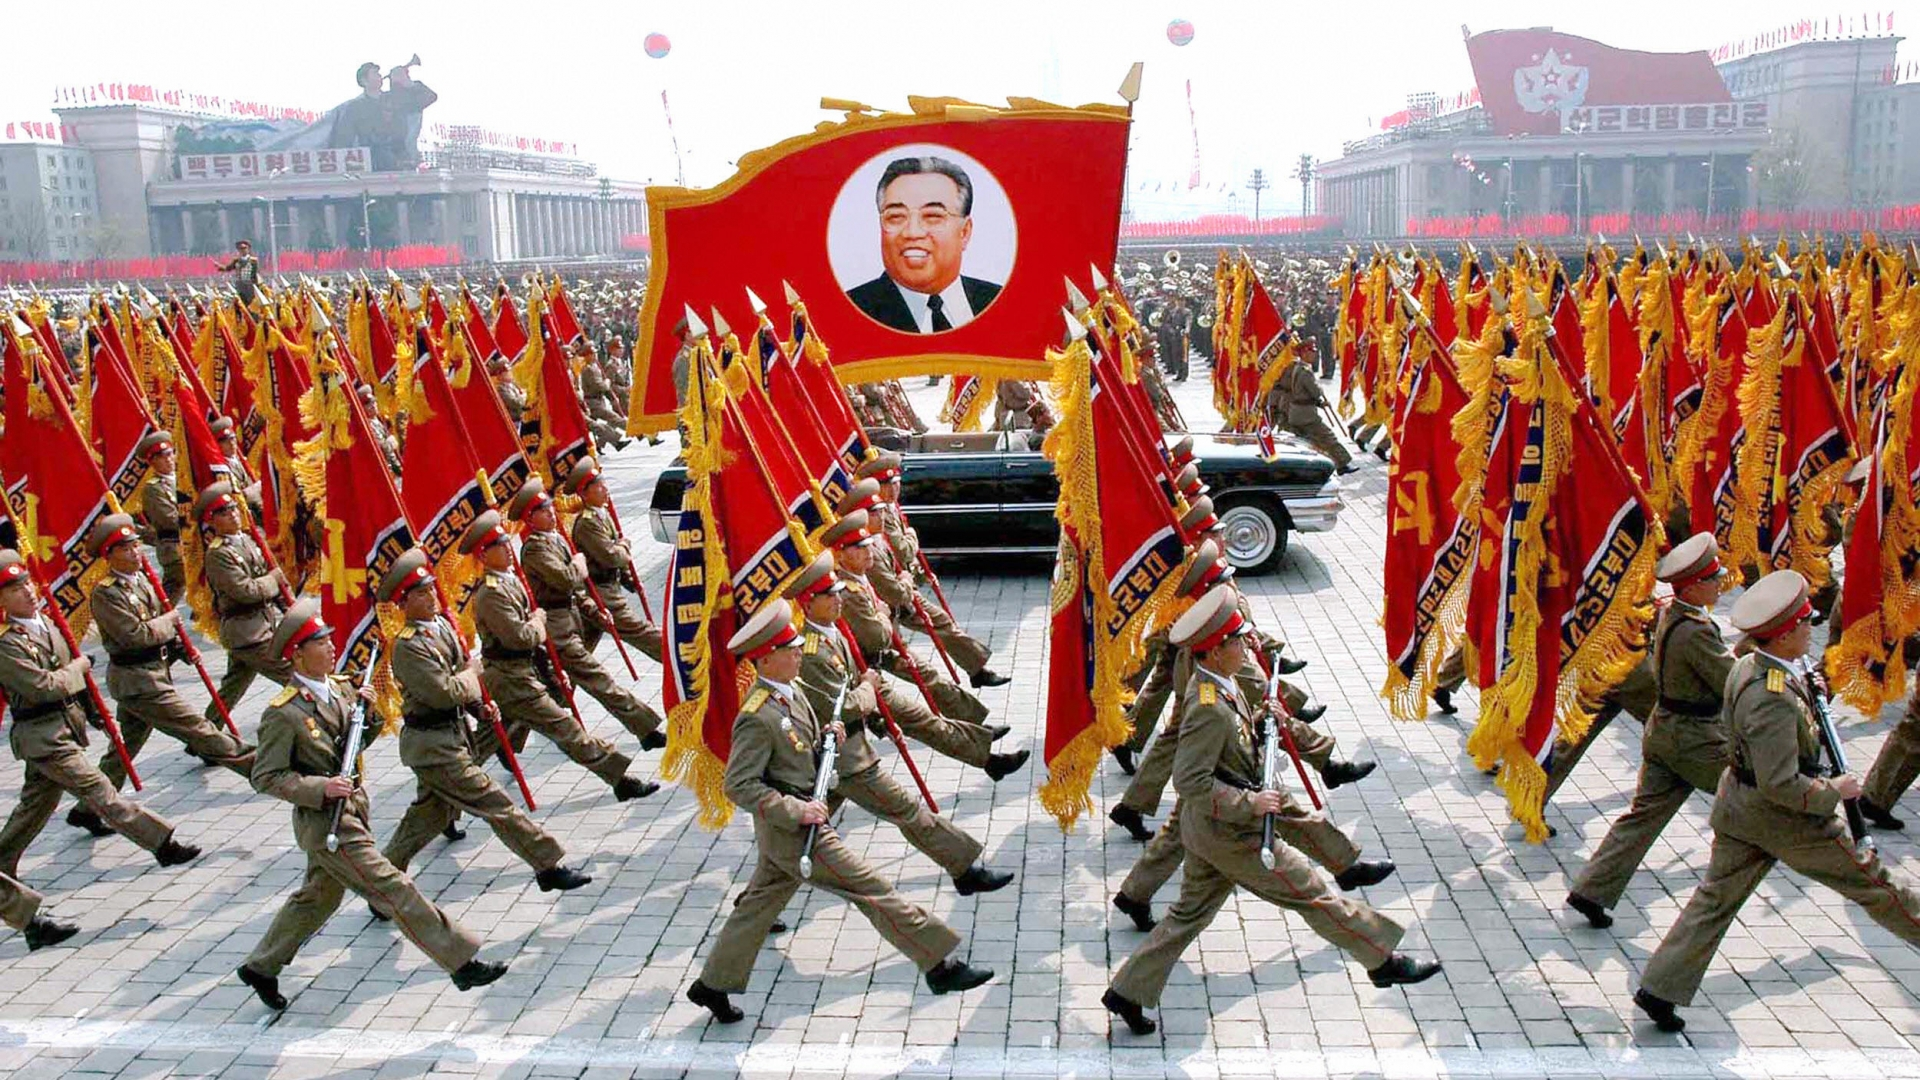 This picture, released from Korean Central News Agency in 2007, shows North Korean soldiers, carrying a large portrait of late North Korean leader Kim Il Sung during a military parade to celebrate the 75th founding anniversary of the KPA at the Kim Il Sung square in Pyongyang, North Korea. (Credit: KCNA/AFP/Getty Images)